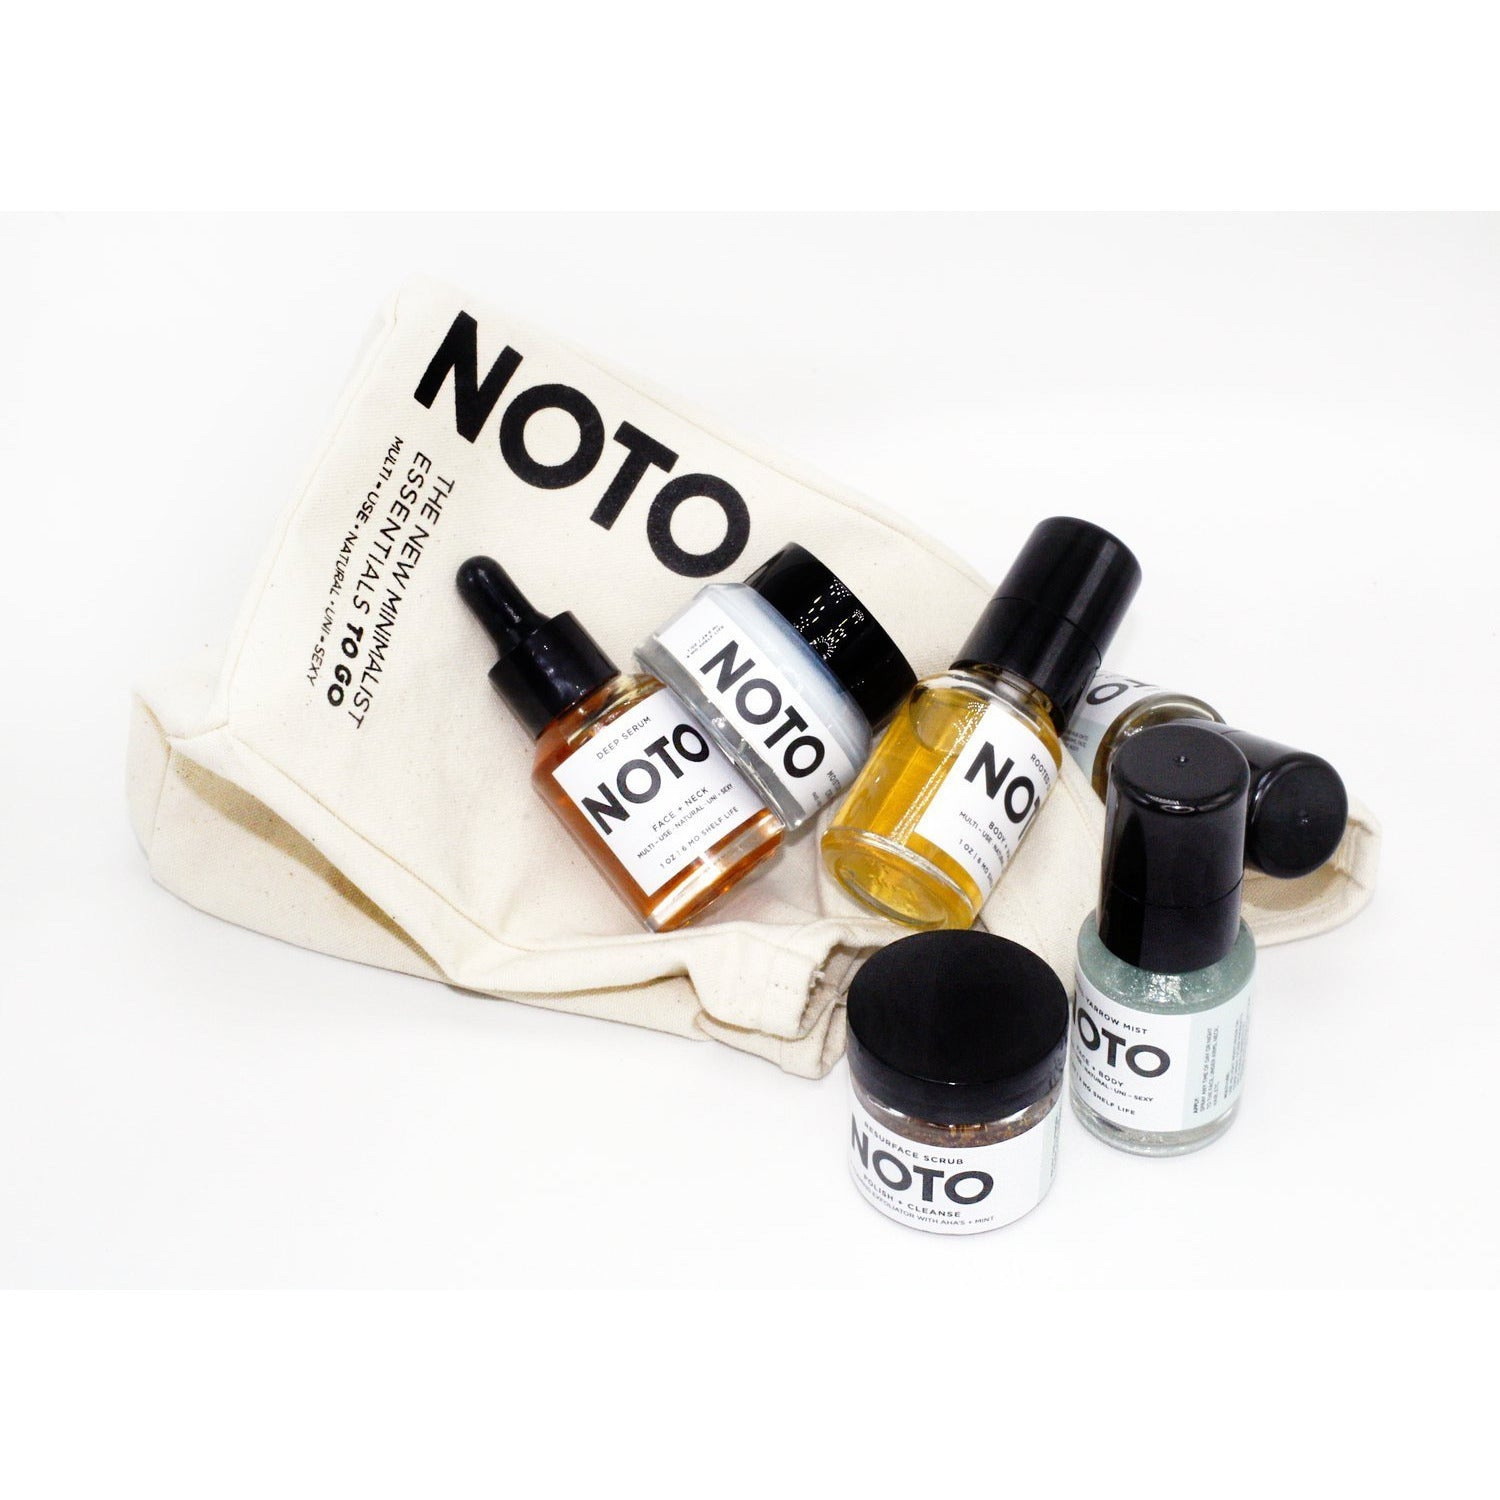 NOTO TO GO // Travel Set